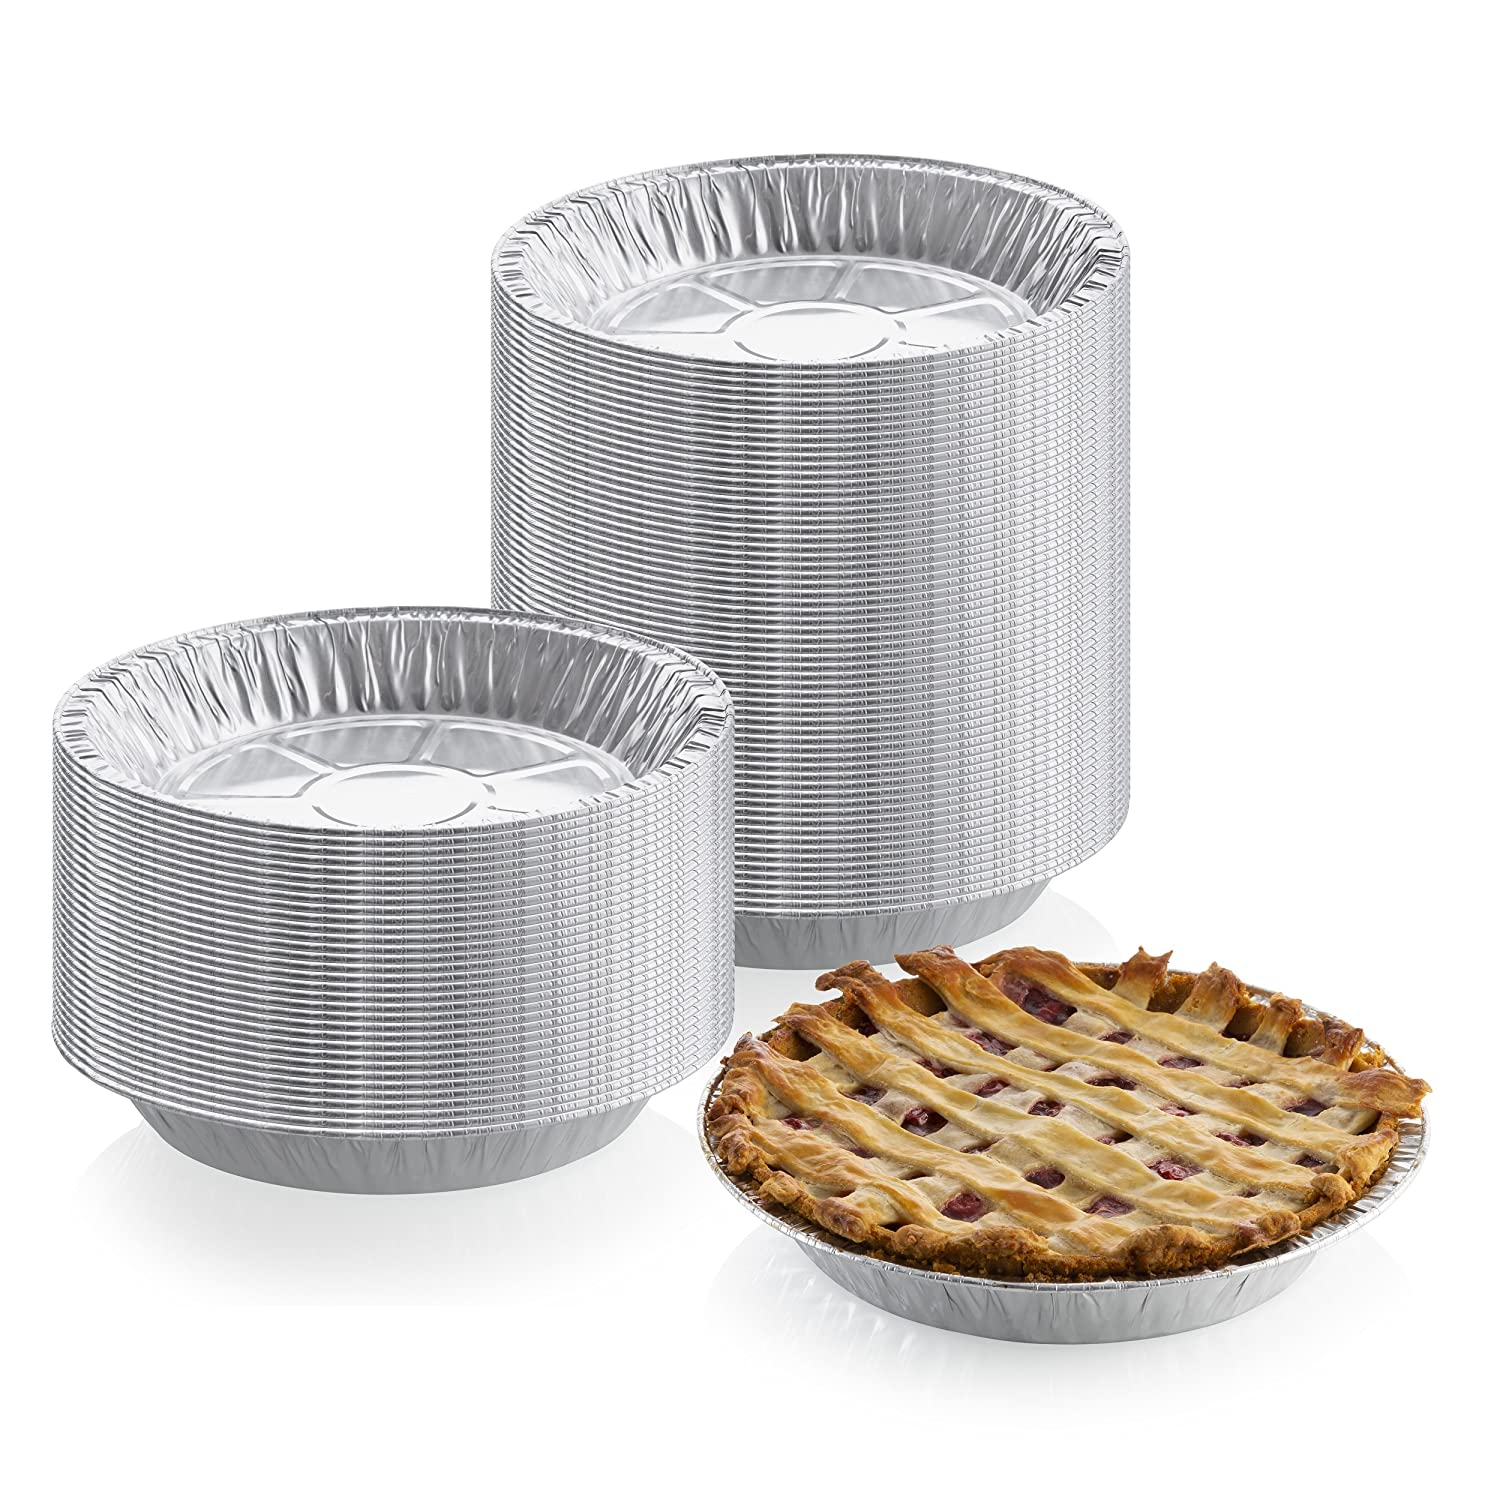 "9"" x 1"" Medium Depth Aluminum Silver Foil Pie Pan (Pack of 50) – Disposable Round Tin Plates for Pies, Tart Quiche, Cheese Cake and Deserts, Perfect for Pie Fundraisers"